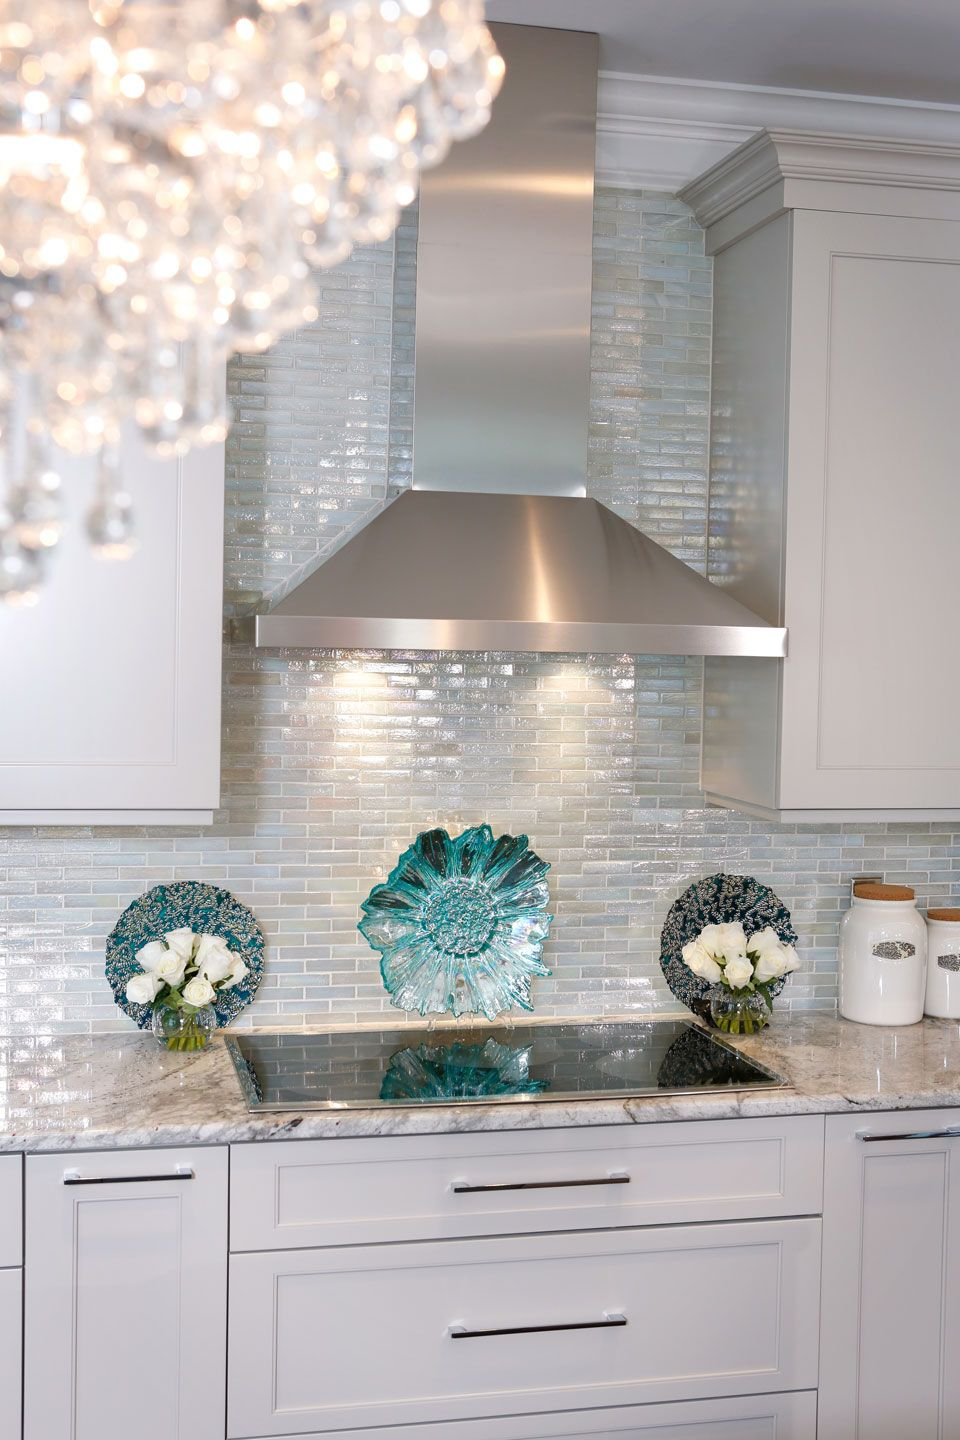 iridescent glass tile by lunada bay stainless hood with taupe